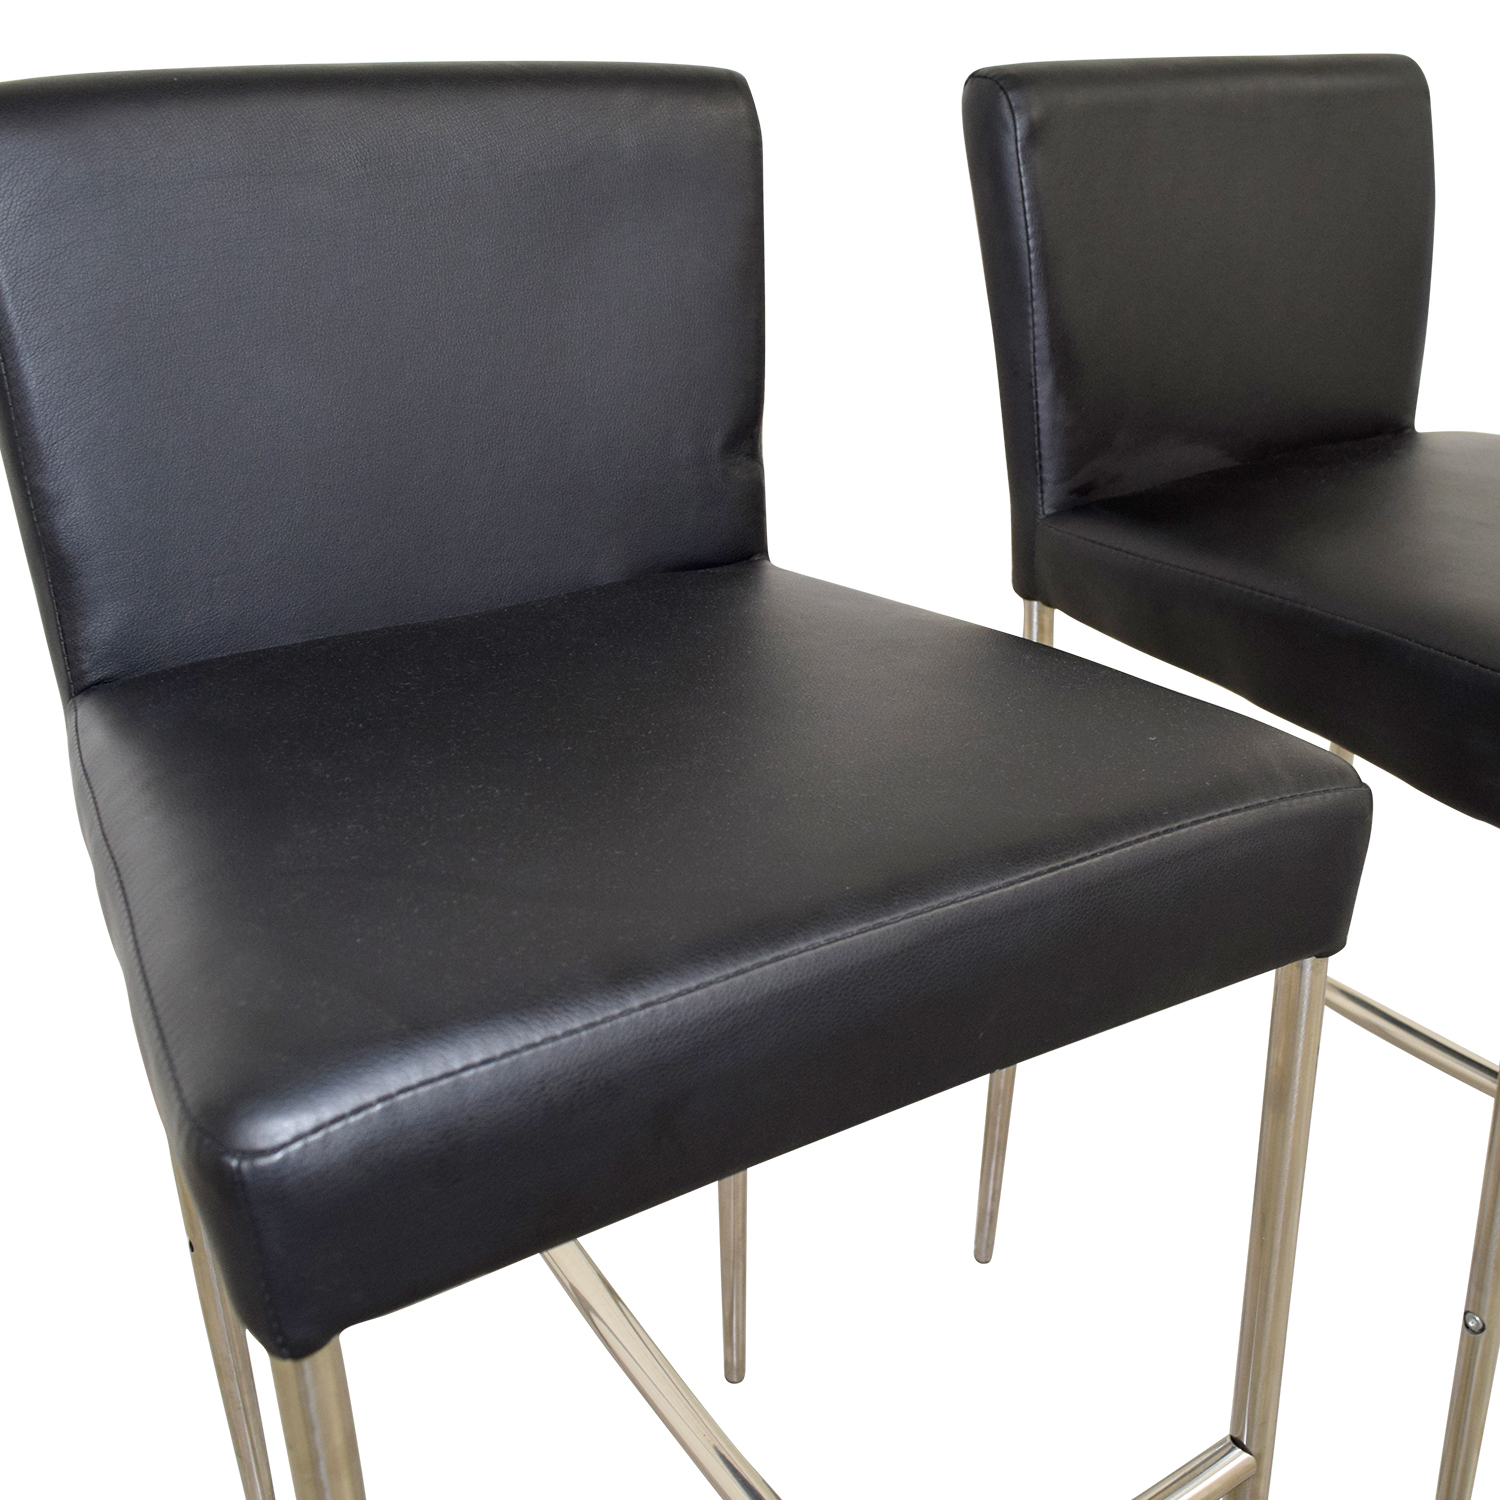 Counter Height Black Leatherette Chairs coupon